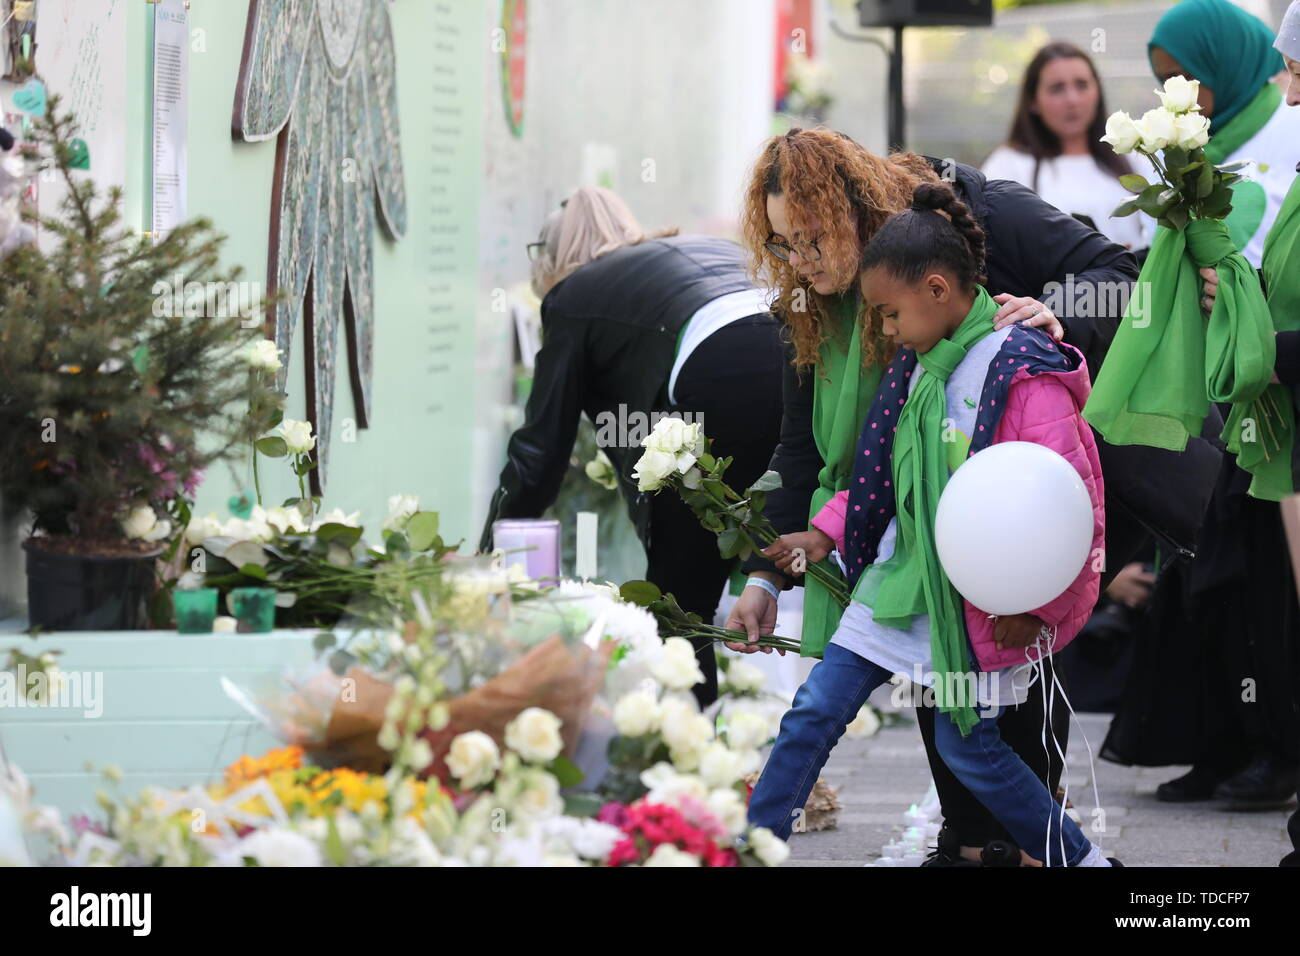 Family and friends of the 72 people who lost their lives in the Grenfell Tower block lay flowers during a wreath laying ceremony outside Grenfell Tower, London, to mark the two-year anniversary. - Stock Image